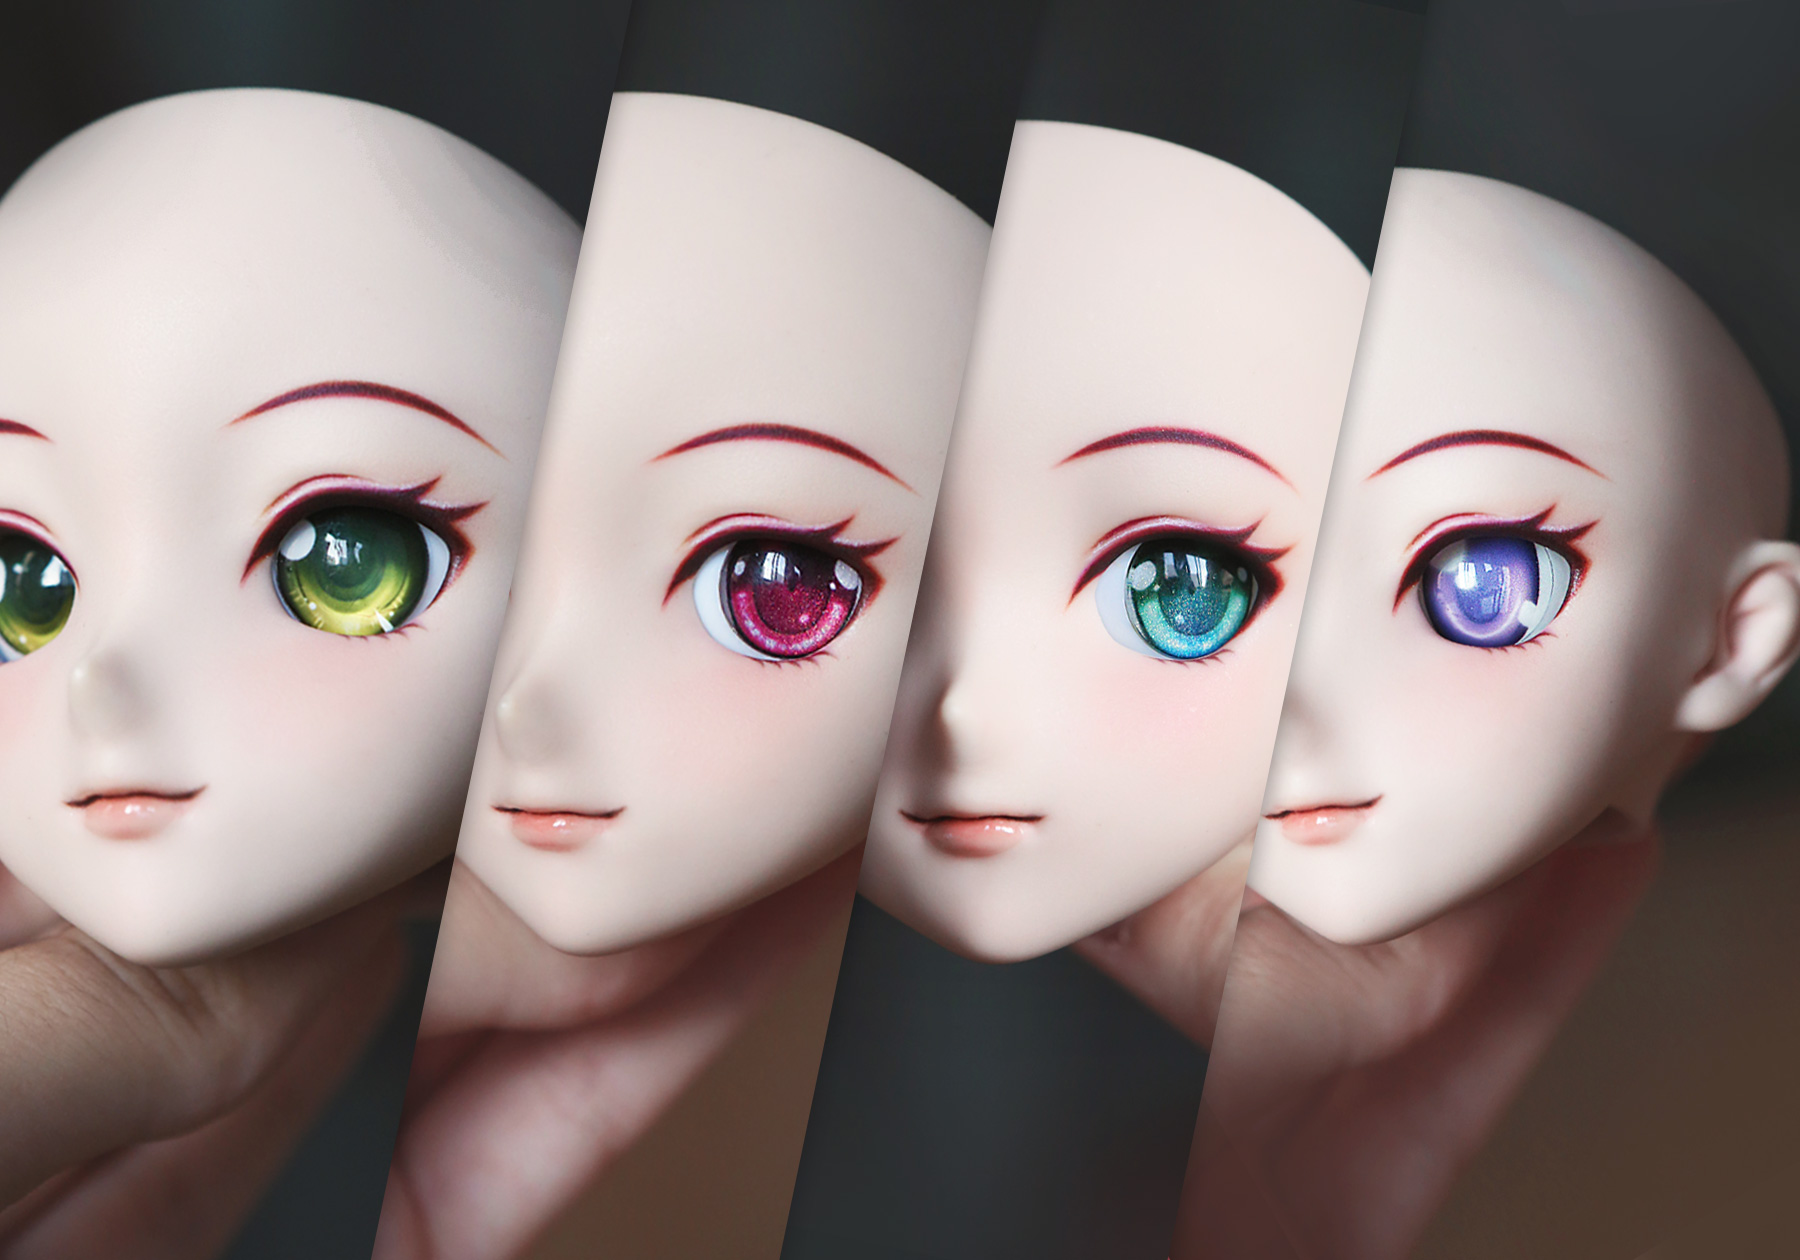 Dollfie Dream eyes